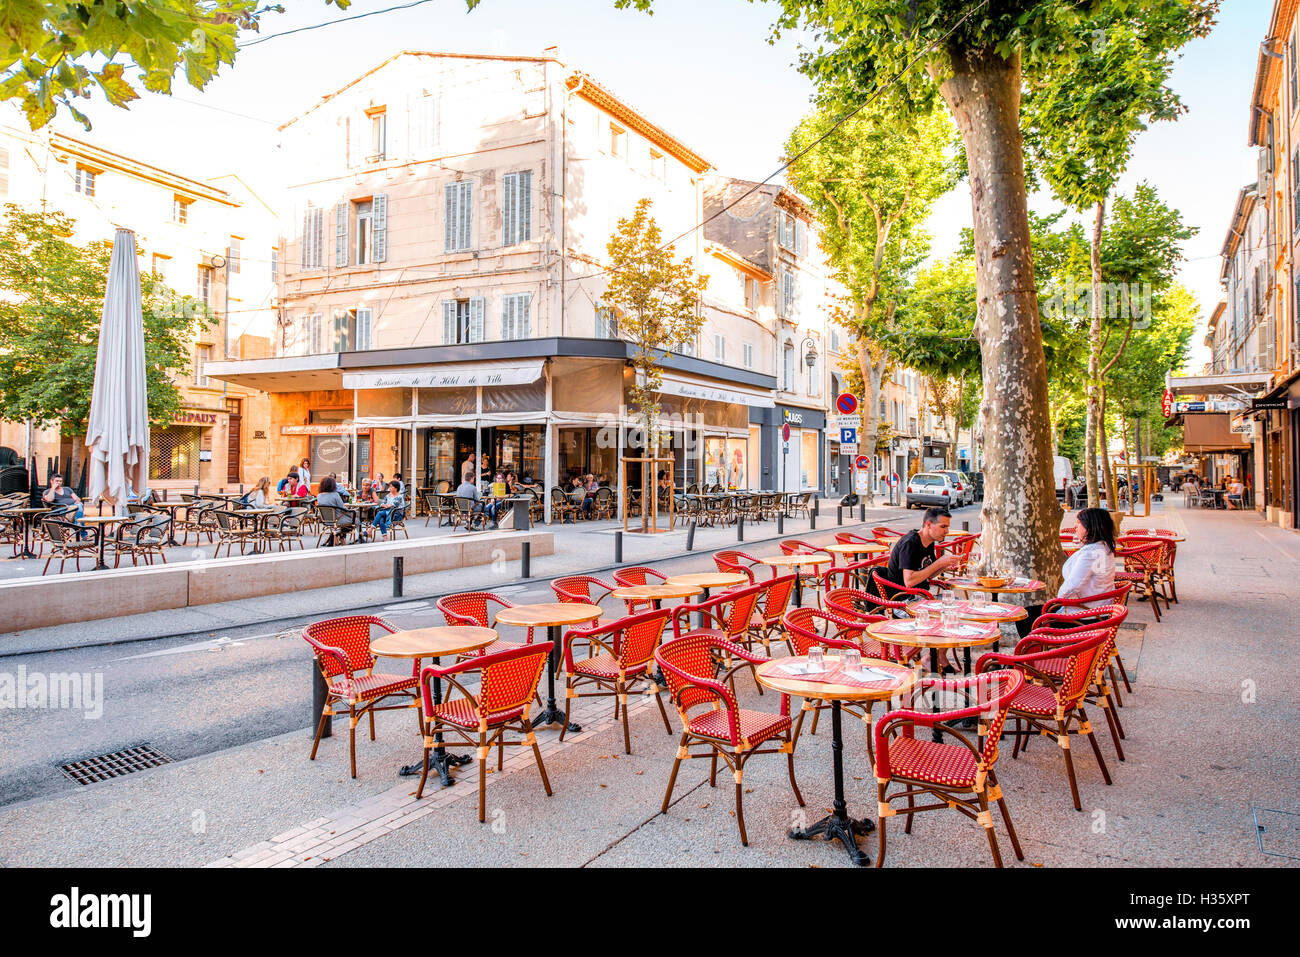 Salon de provence photos salon de provence images alamy - Piscine canourgues salon de provence ...